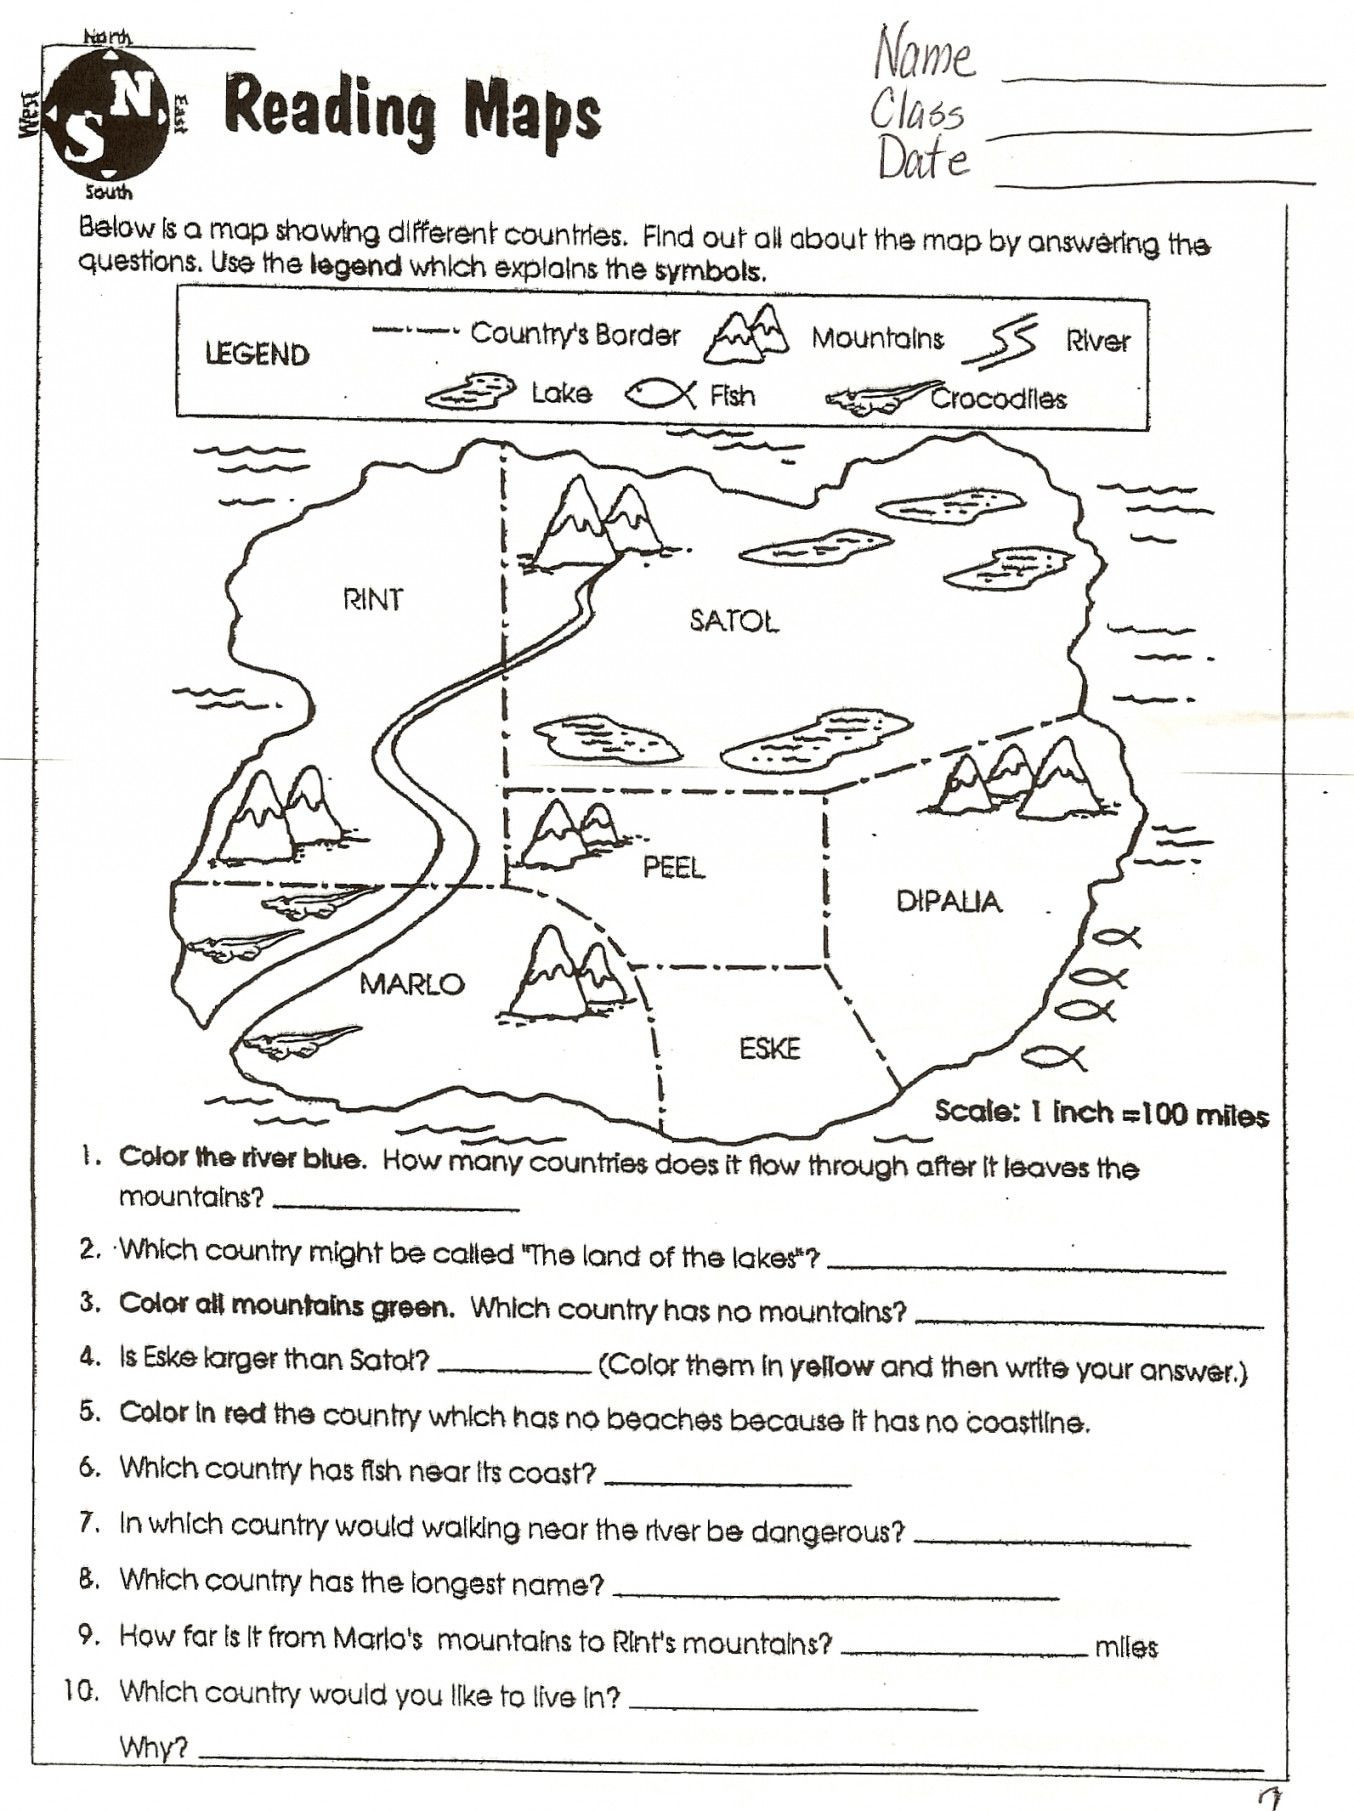 Maps Worksheets 2nd Grade Map Skills Worksheets to Printable 5th Grade Middle School